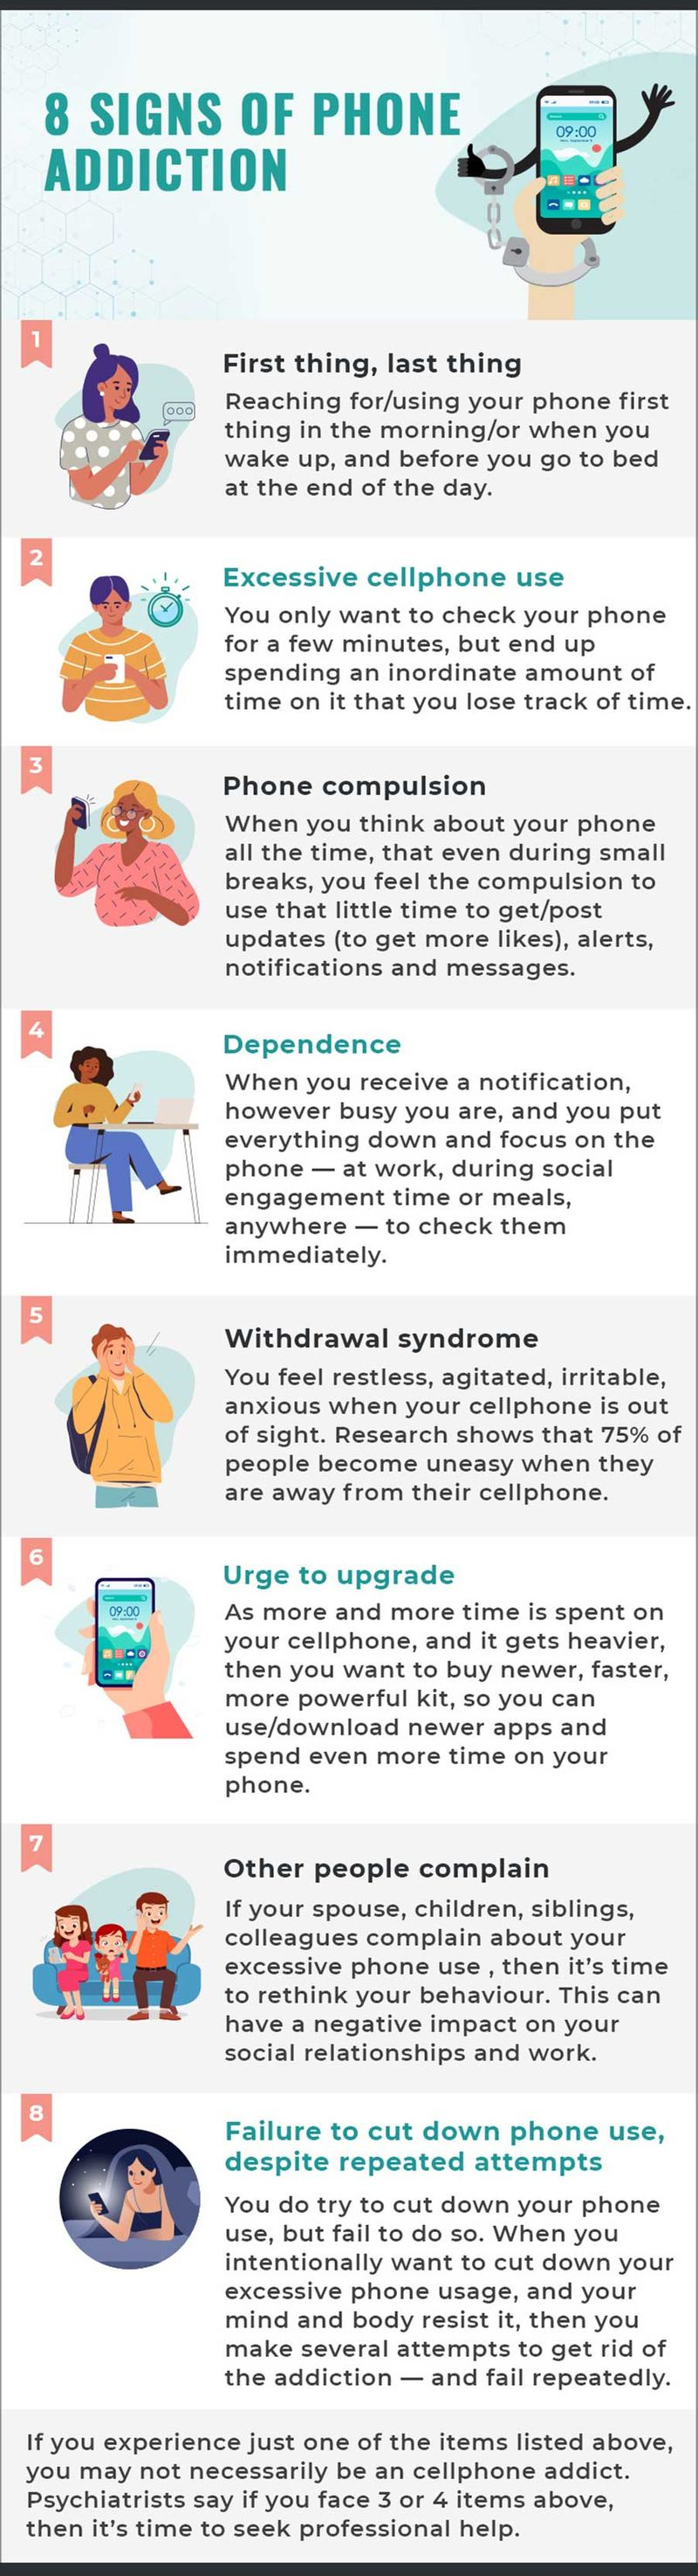 Signs of Phone addiction